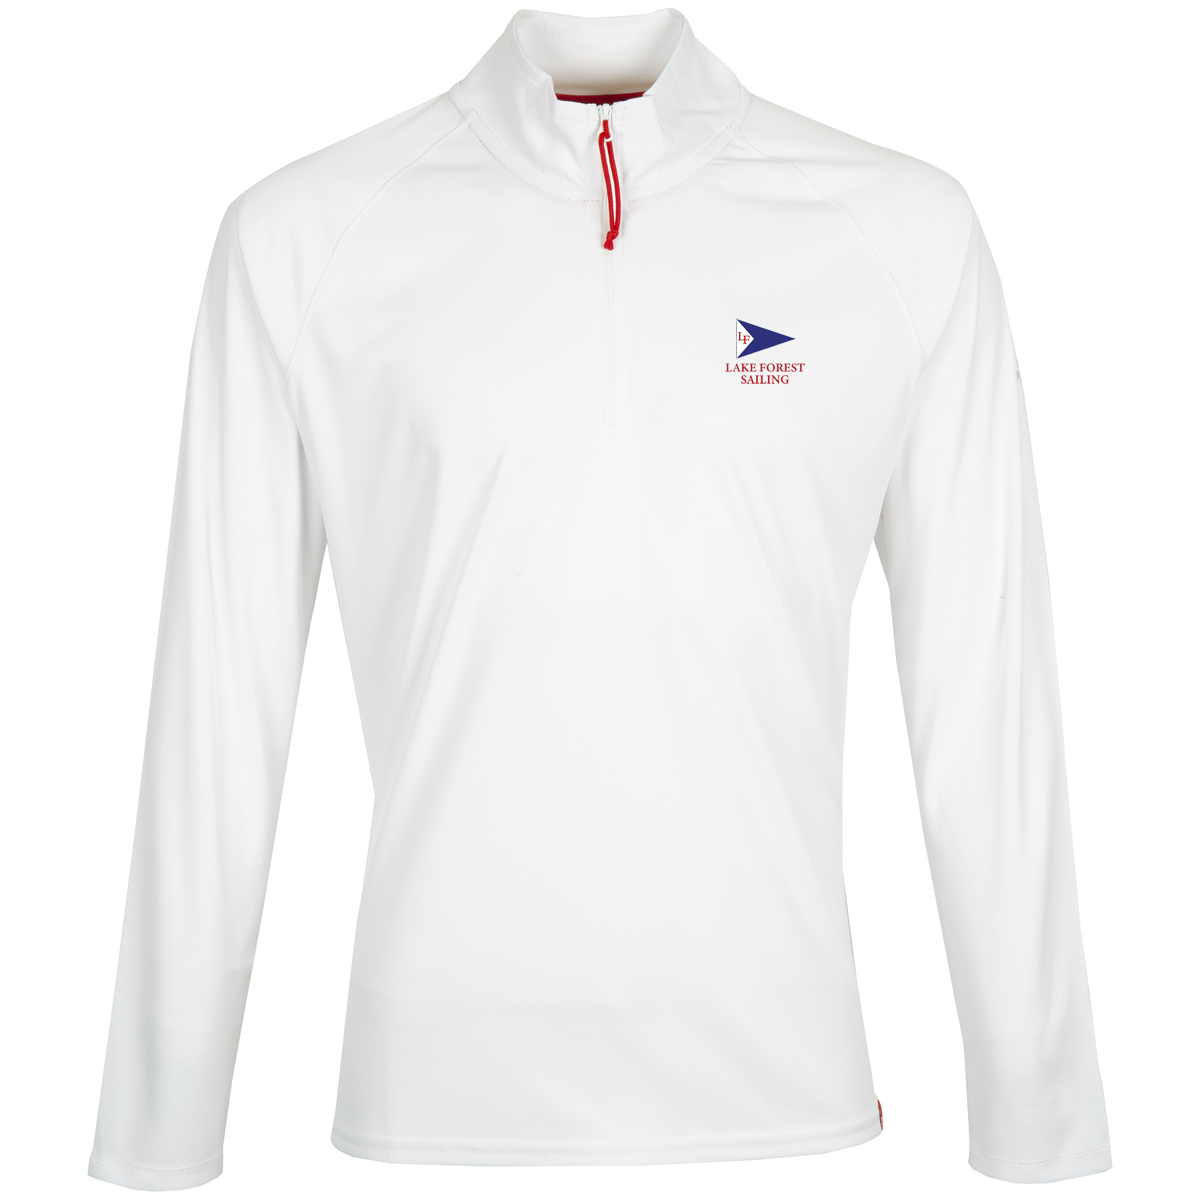 LAKE FOREST SAILING M'S GILL 1/4 ZIP PULLOVER